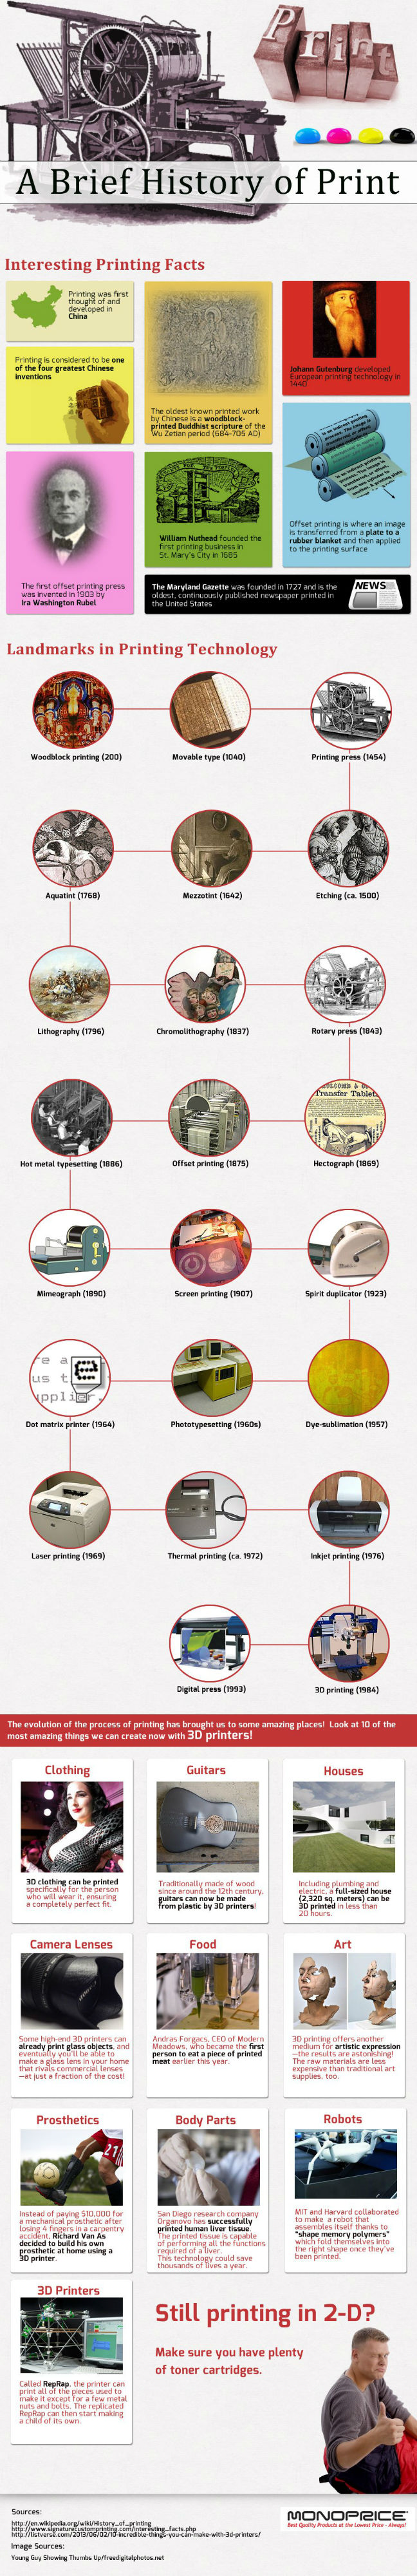 A Brief History of Printing [Infographic]